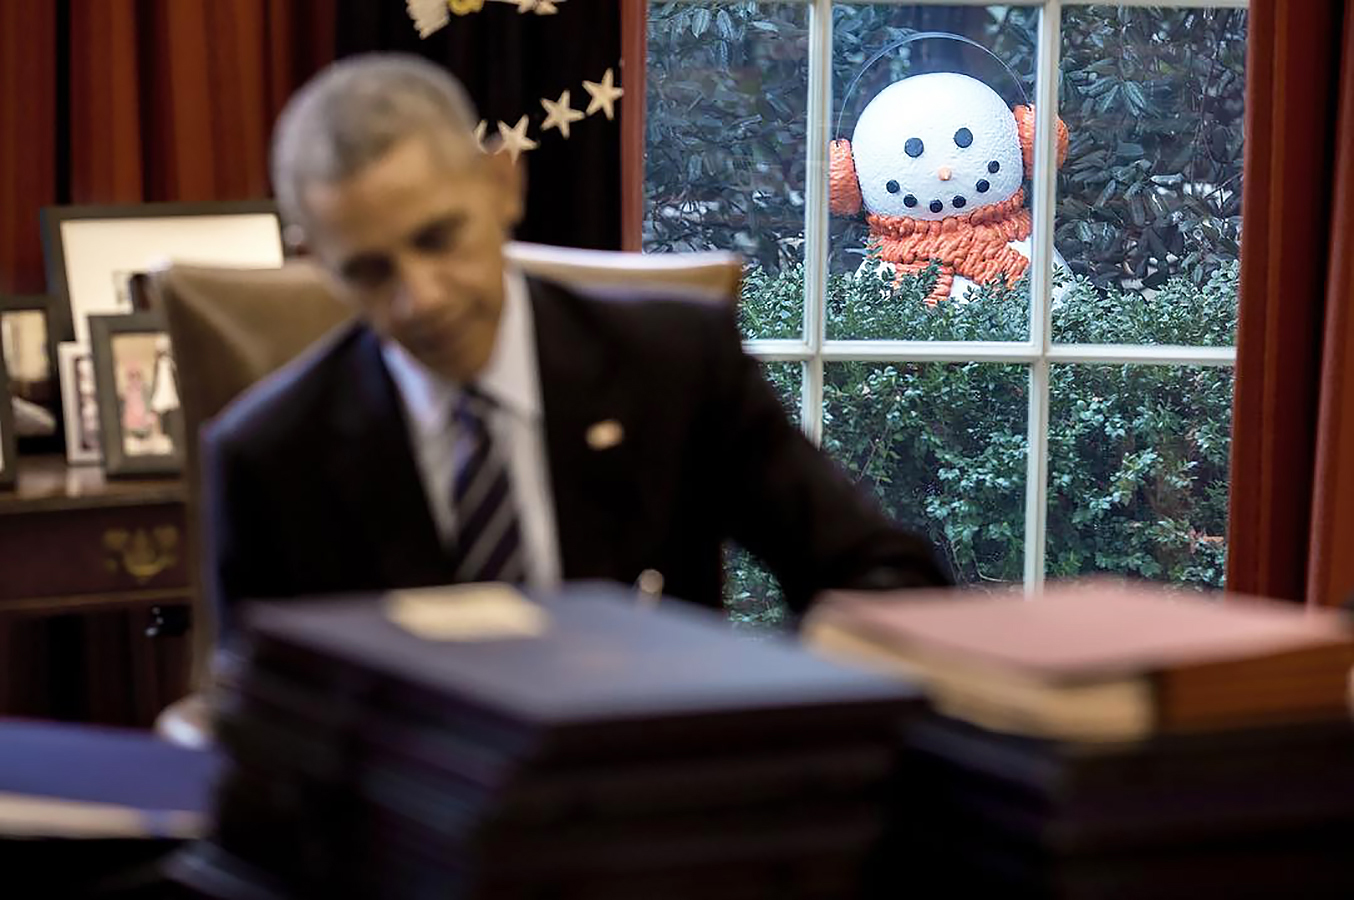 Creepy Snowmen Pranks President Obama?